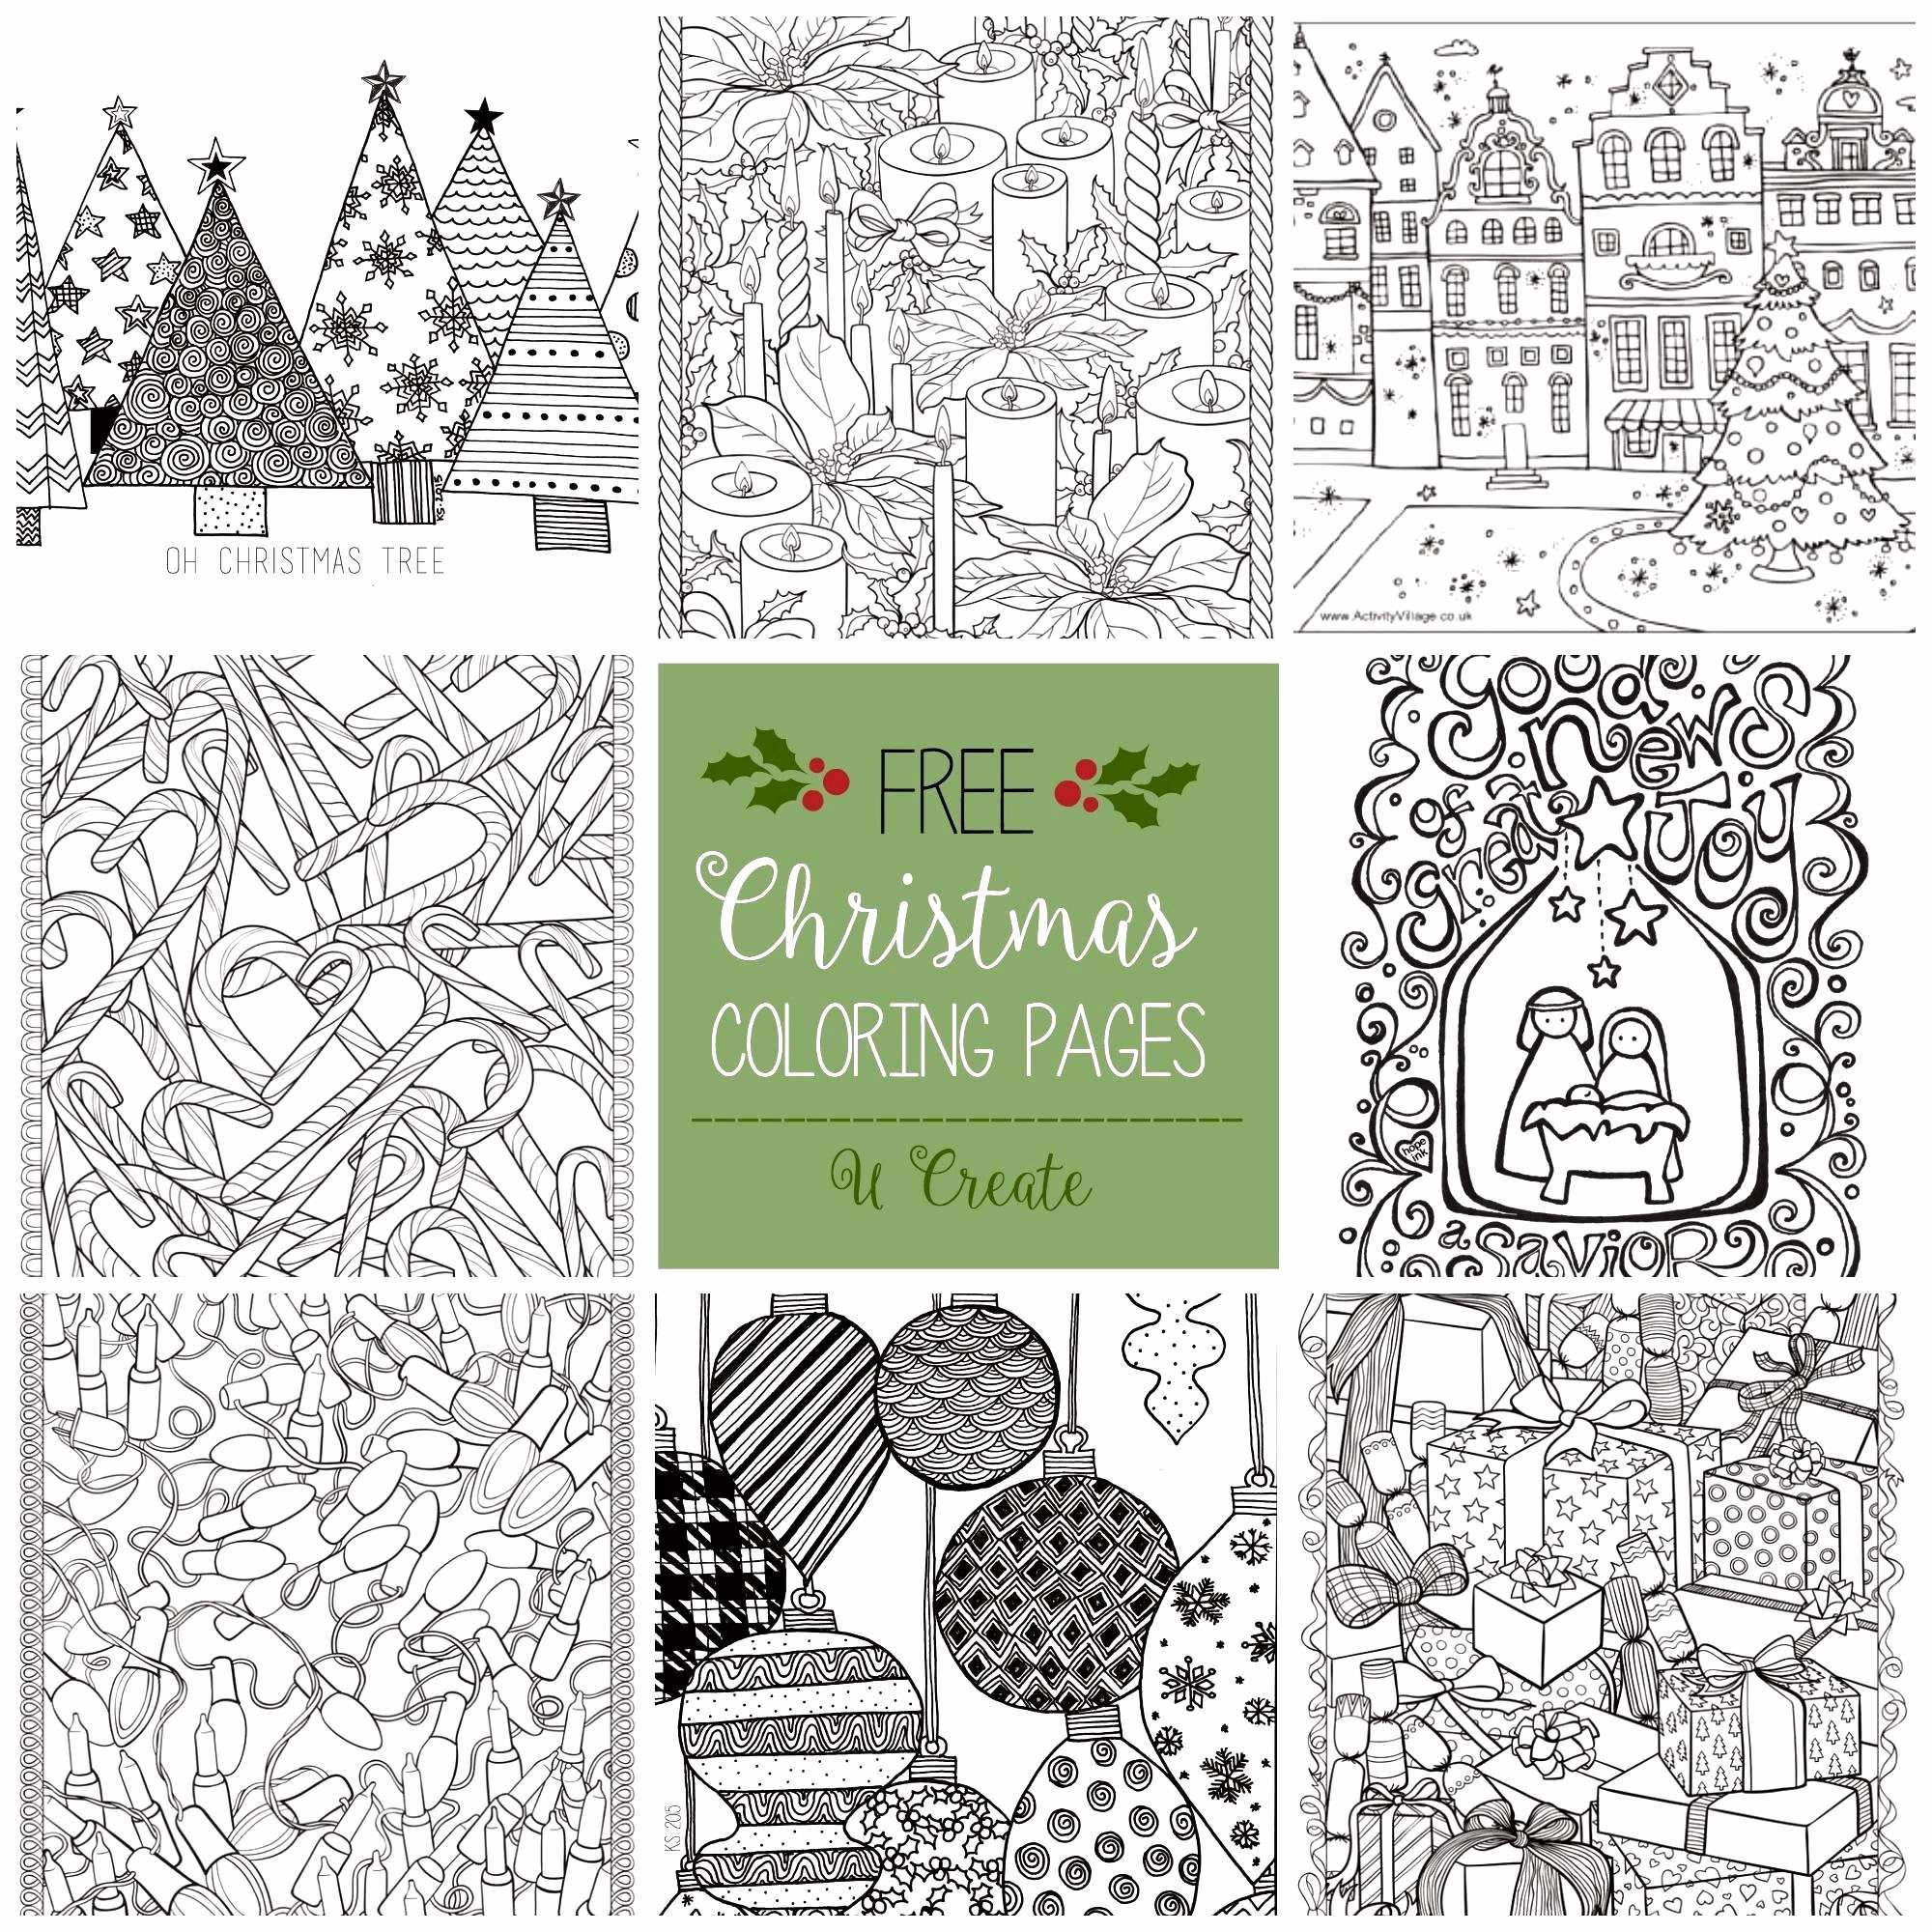 Christmas Coloring Pages Nativity With Medquit Free Printable